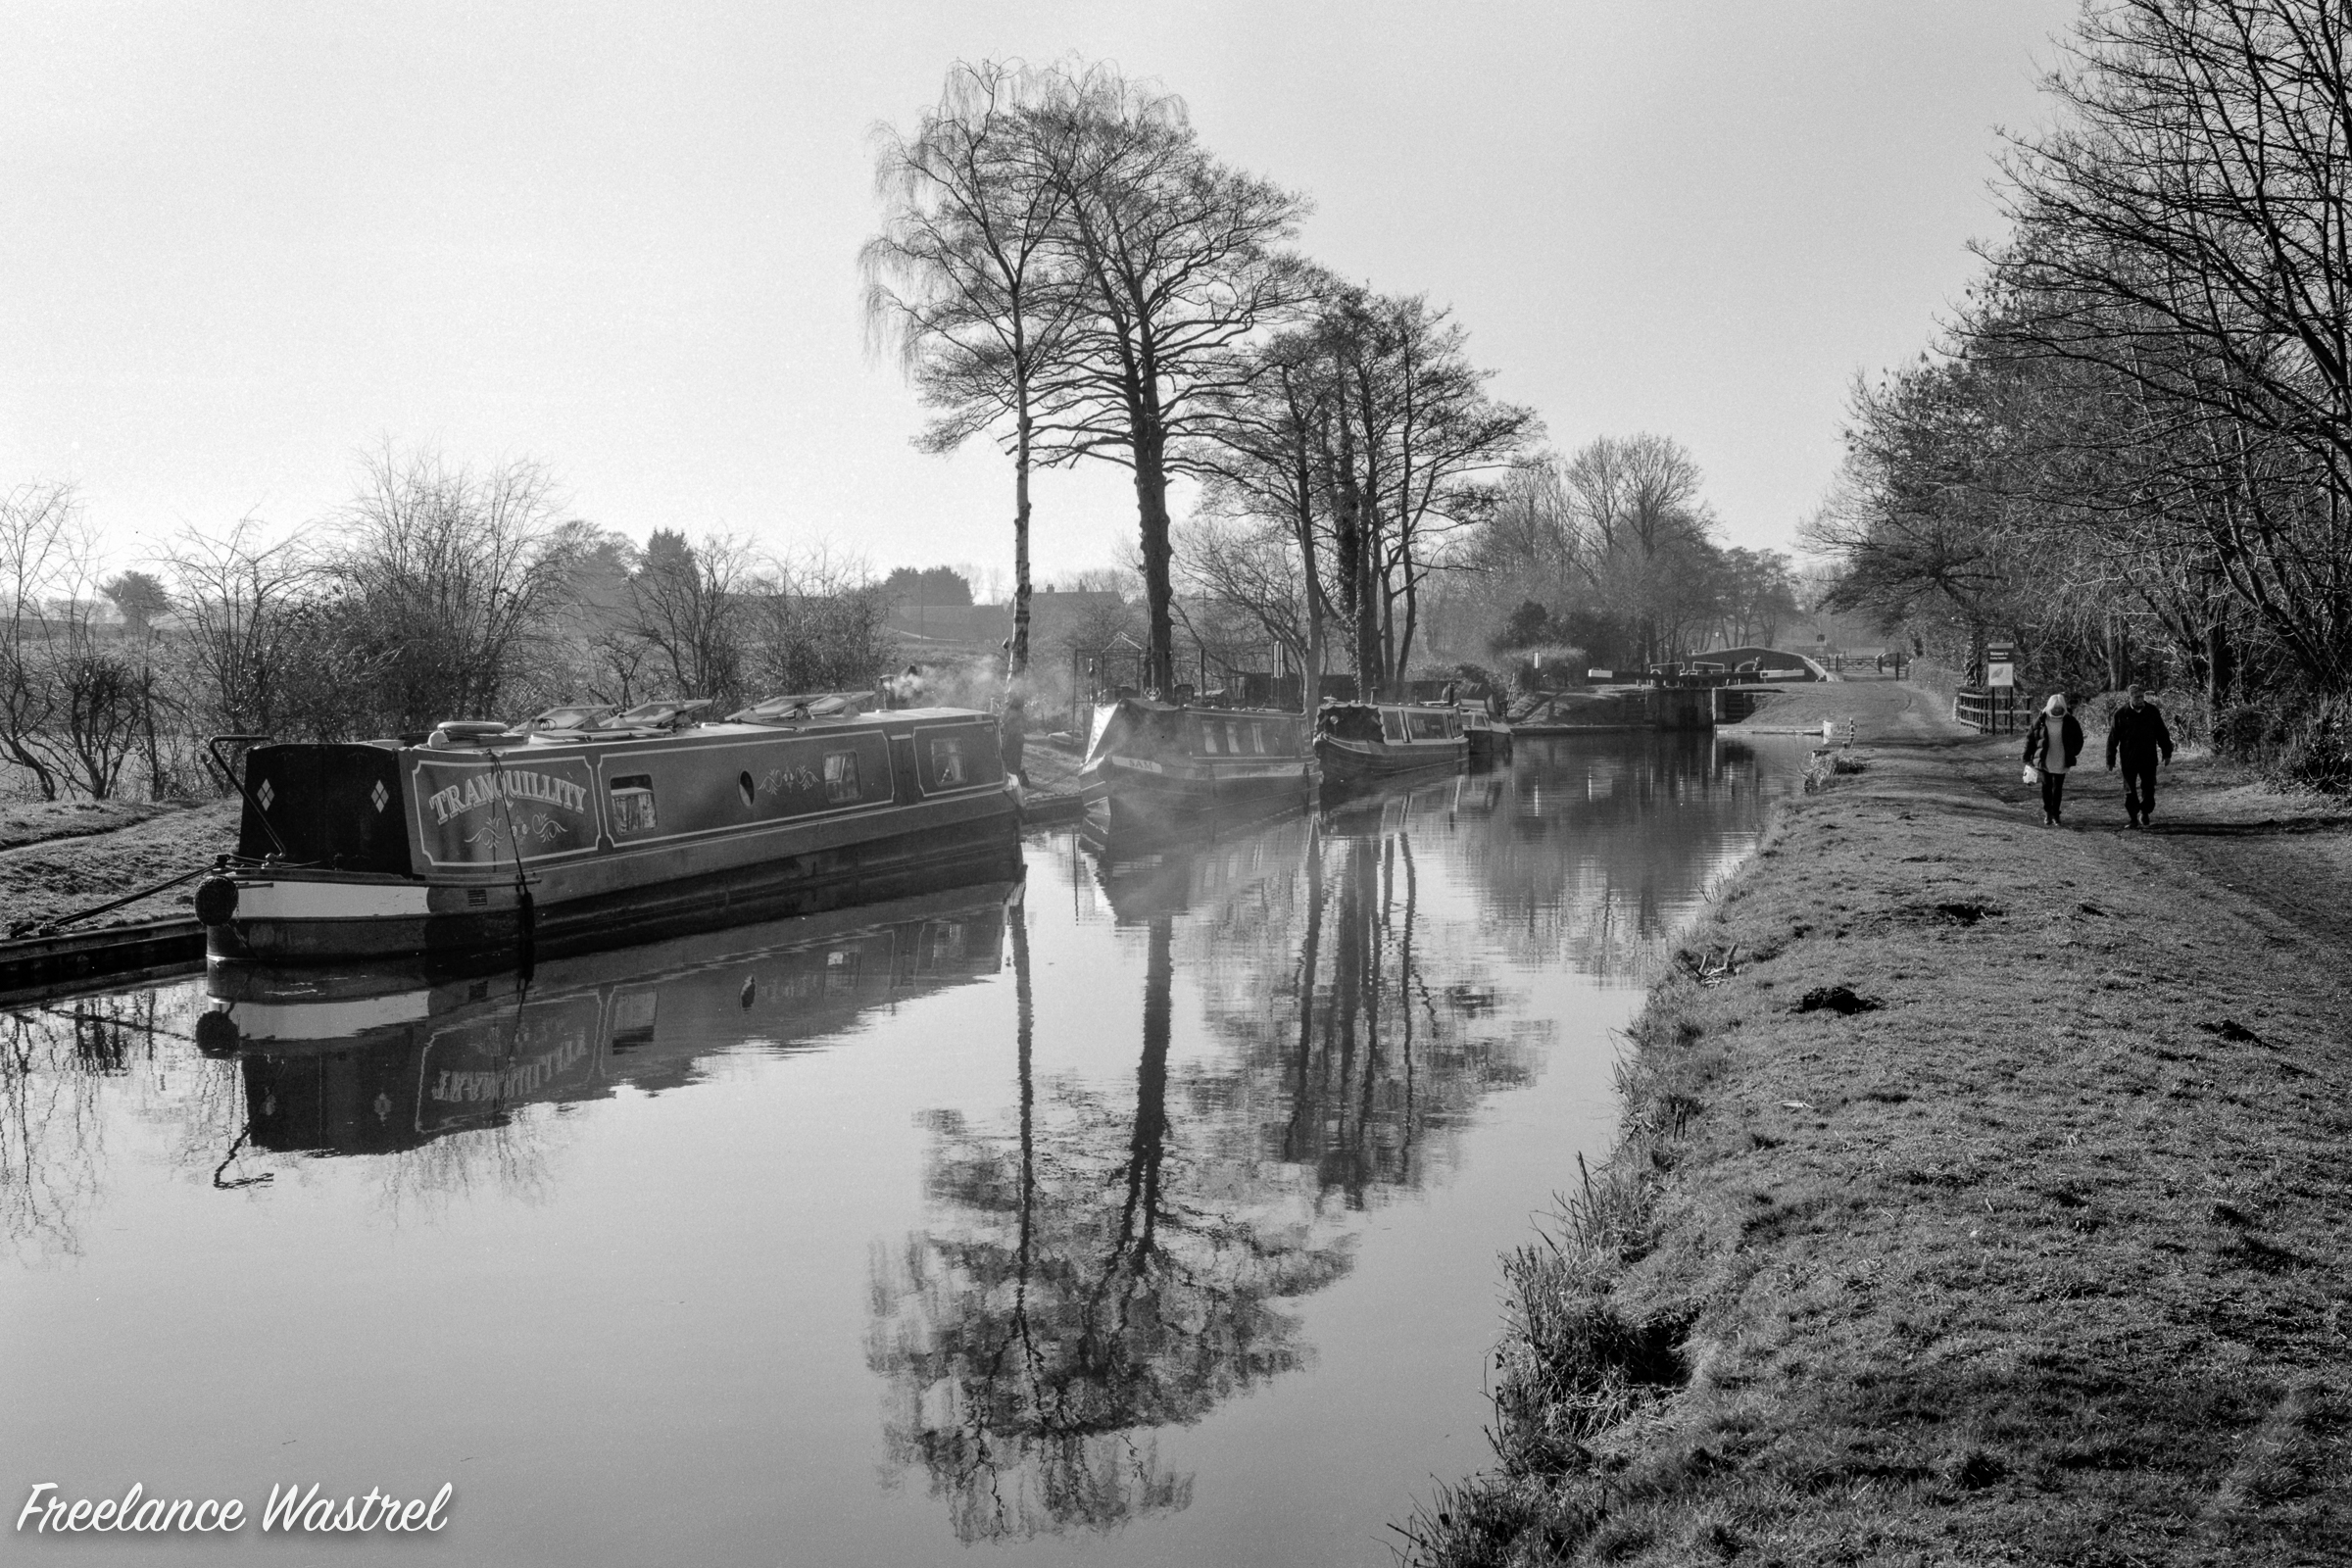 Tranquillity, Trent & Mersey Canal, February 2019.jpg